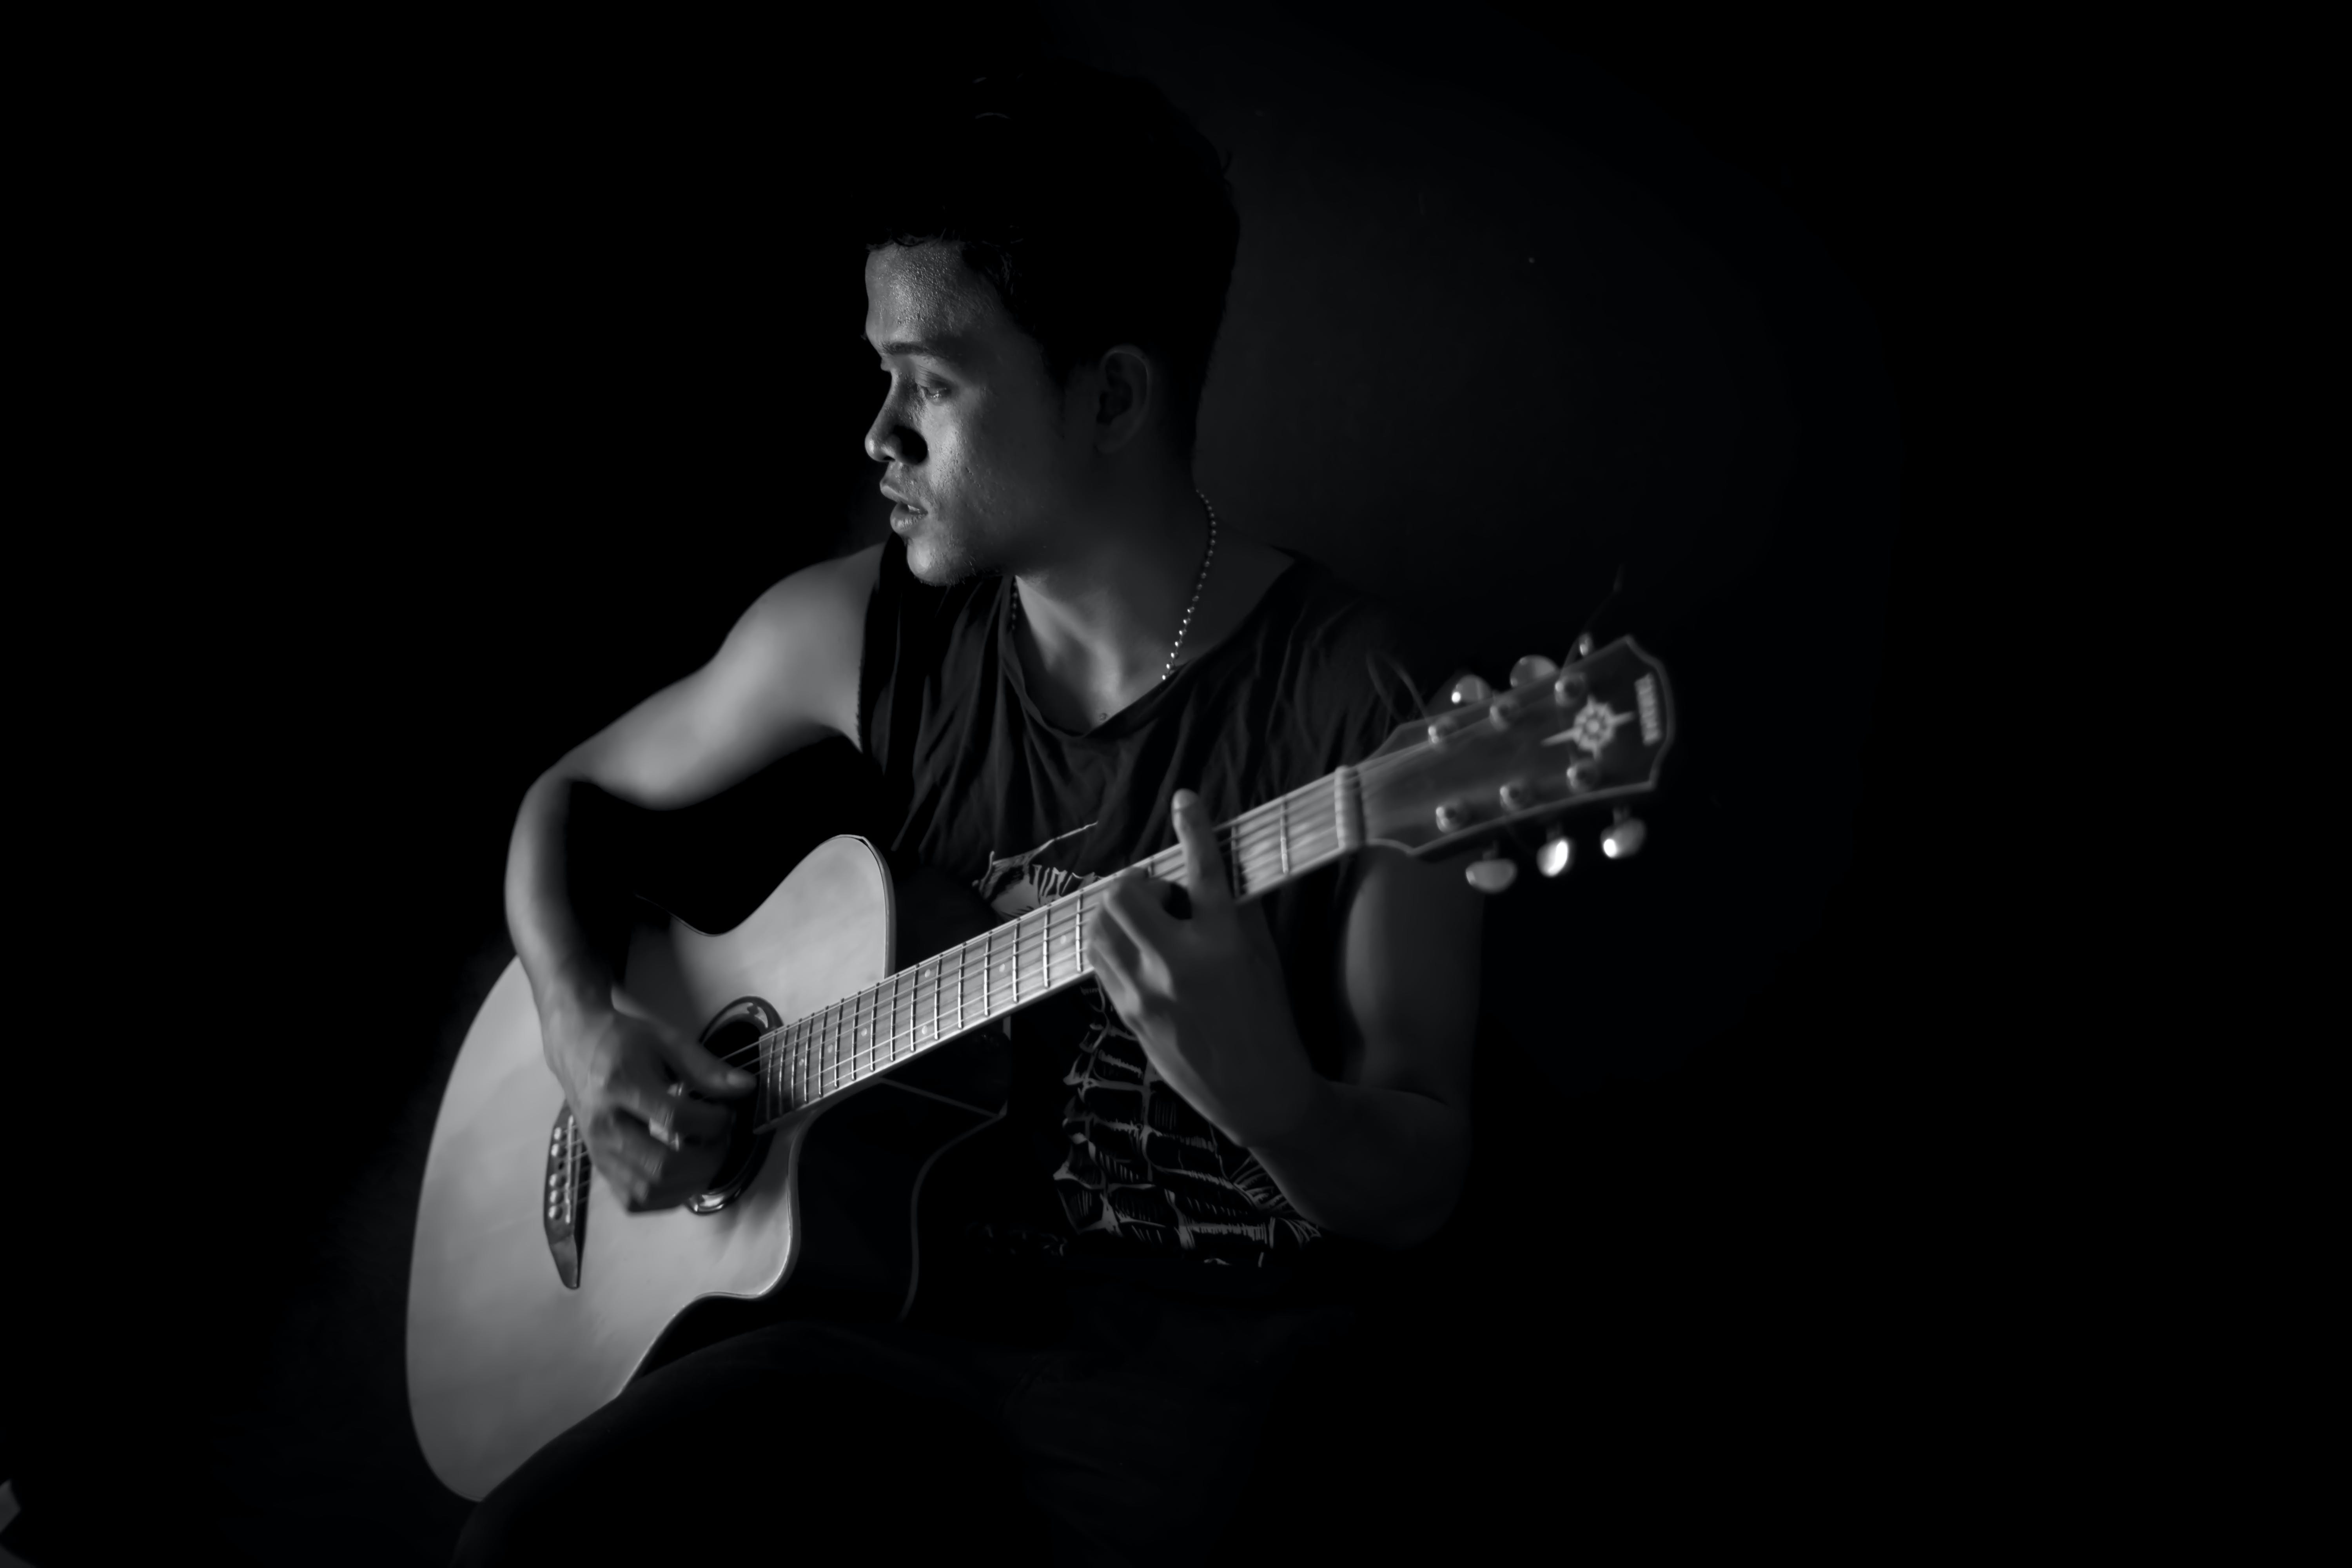 Monochrome Photography of Man Playing Guitar